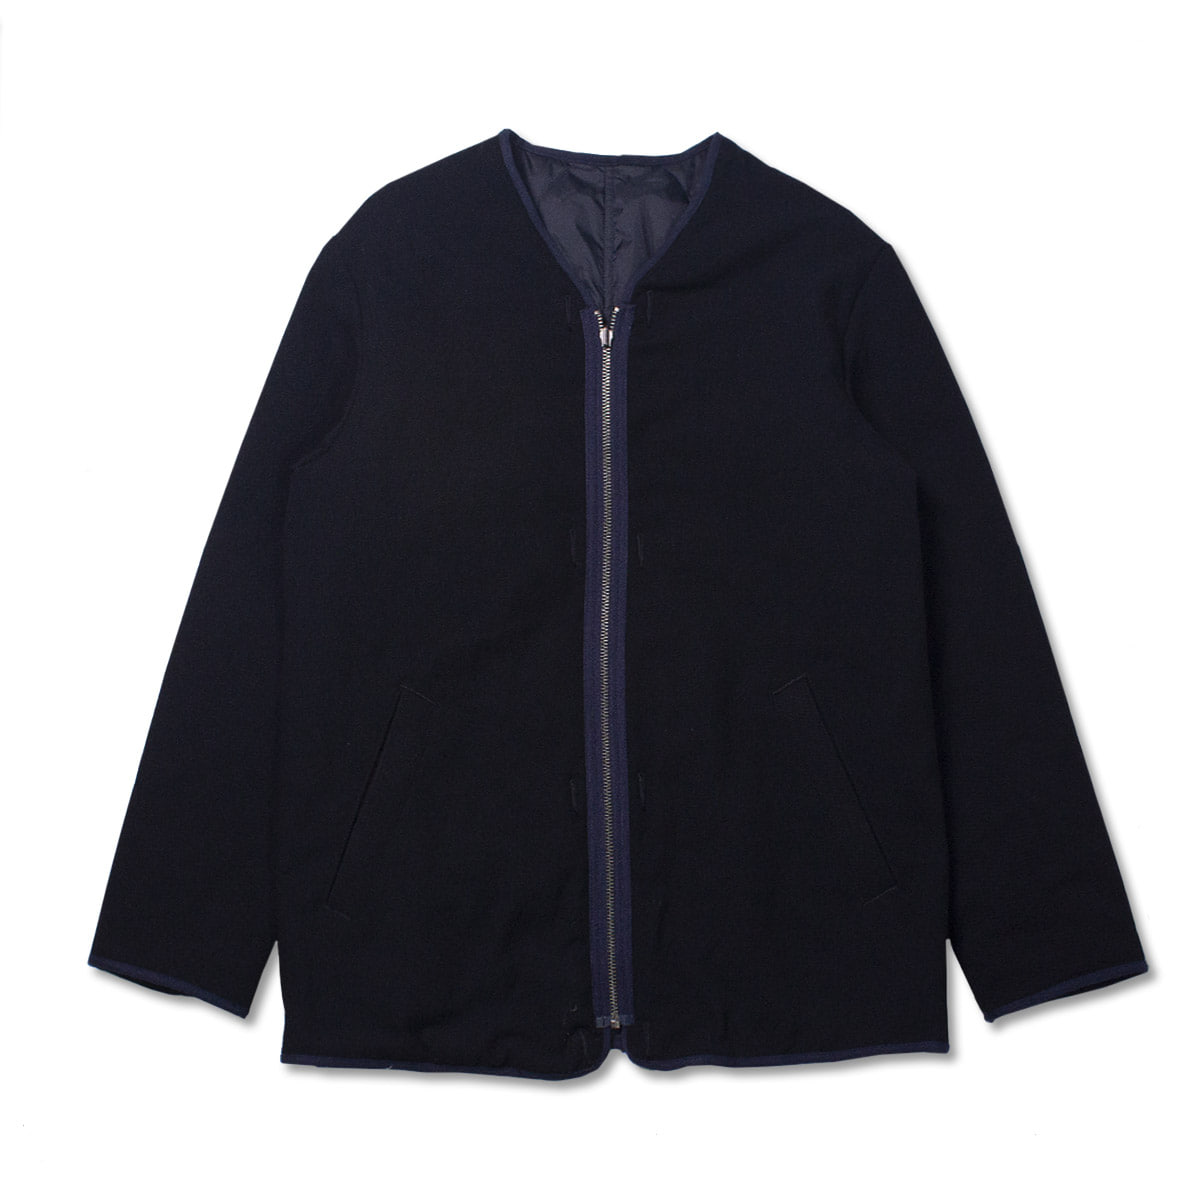 [SAGE DE CRET] REVERSIBLE NO COLLAR JACKET 'NAVY'